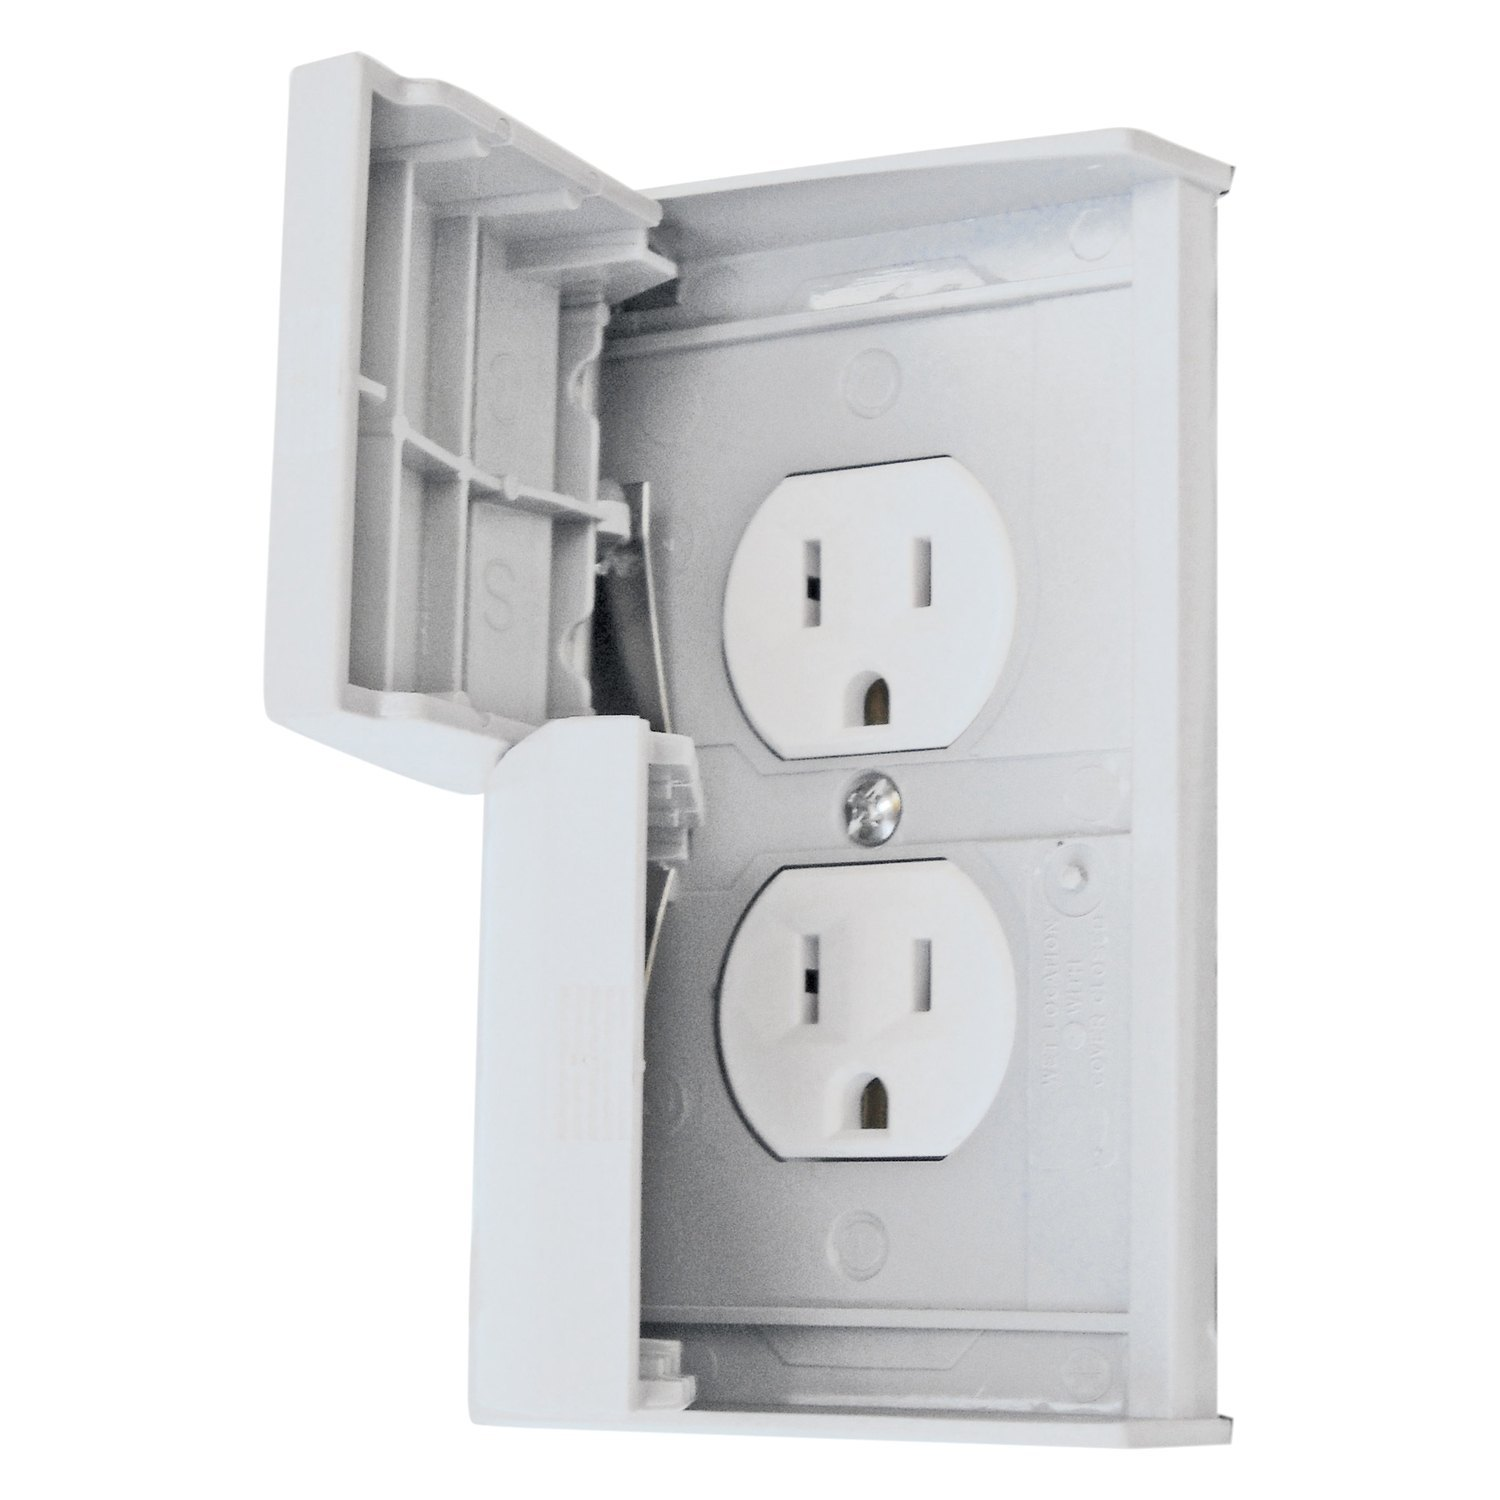 Diamond Group® - Standard Cover with Receptacle - CAMPERiD.com